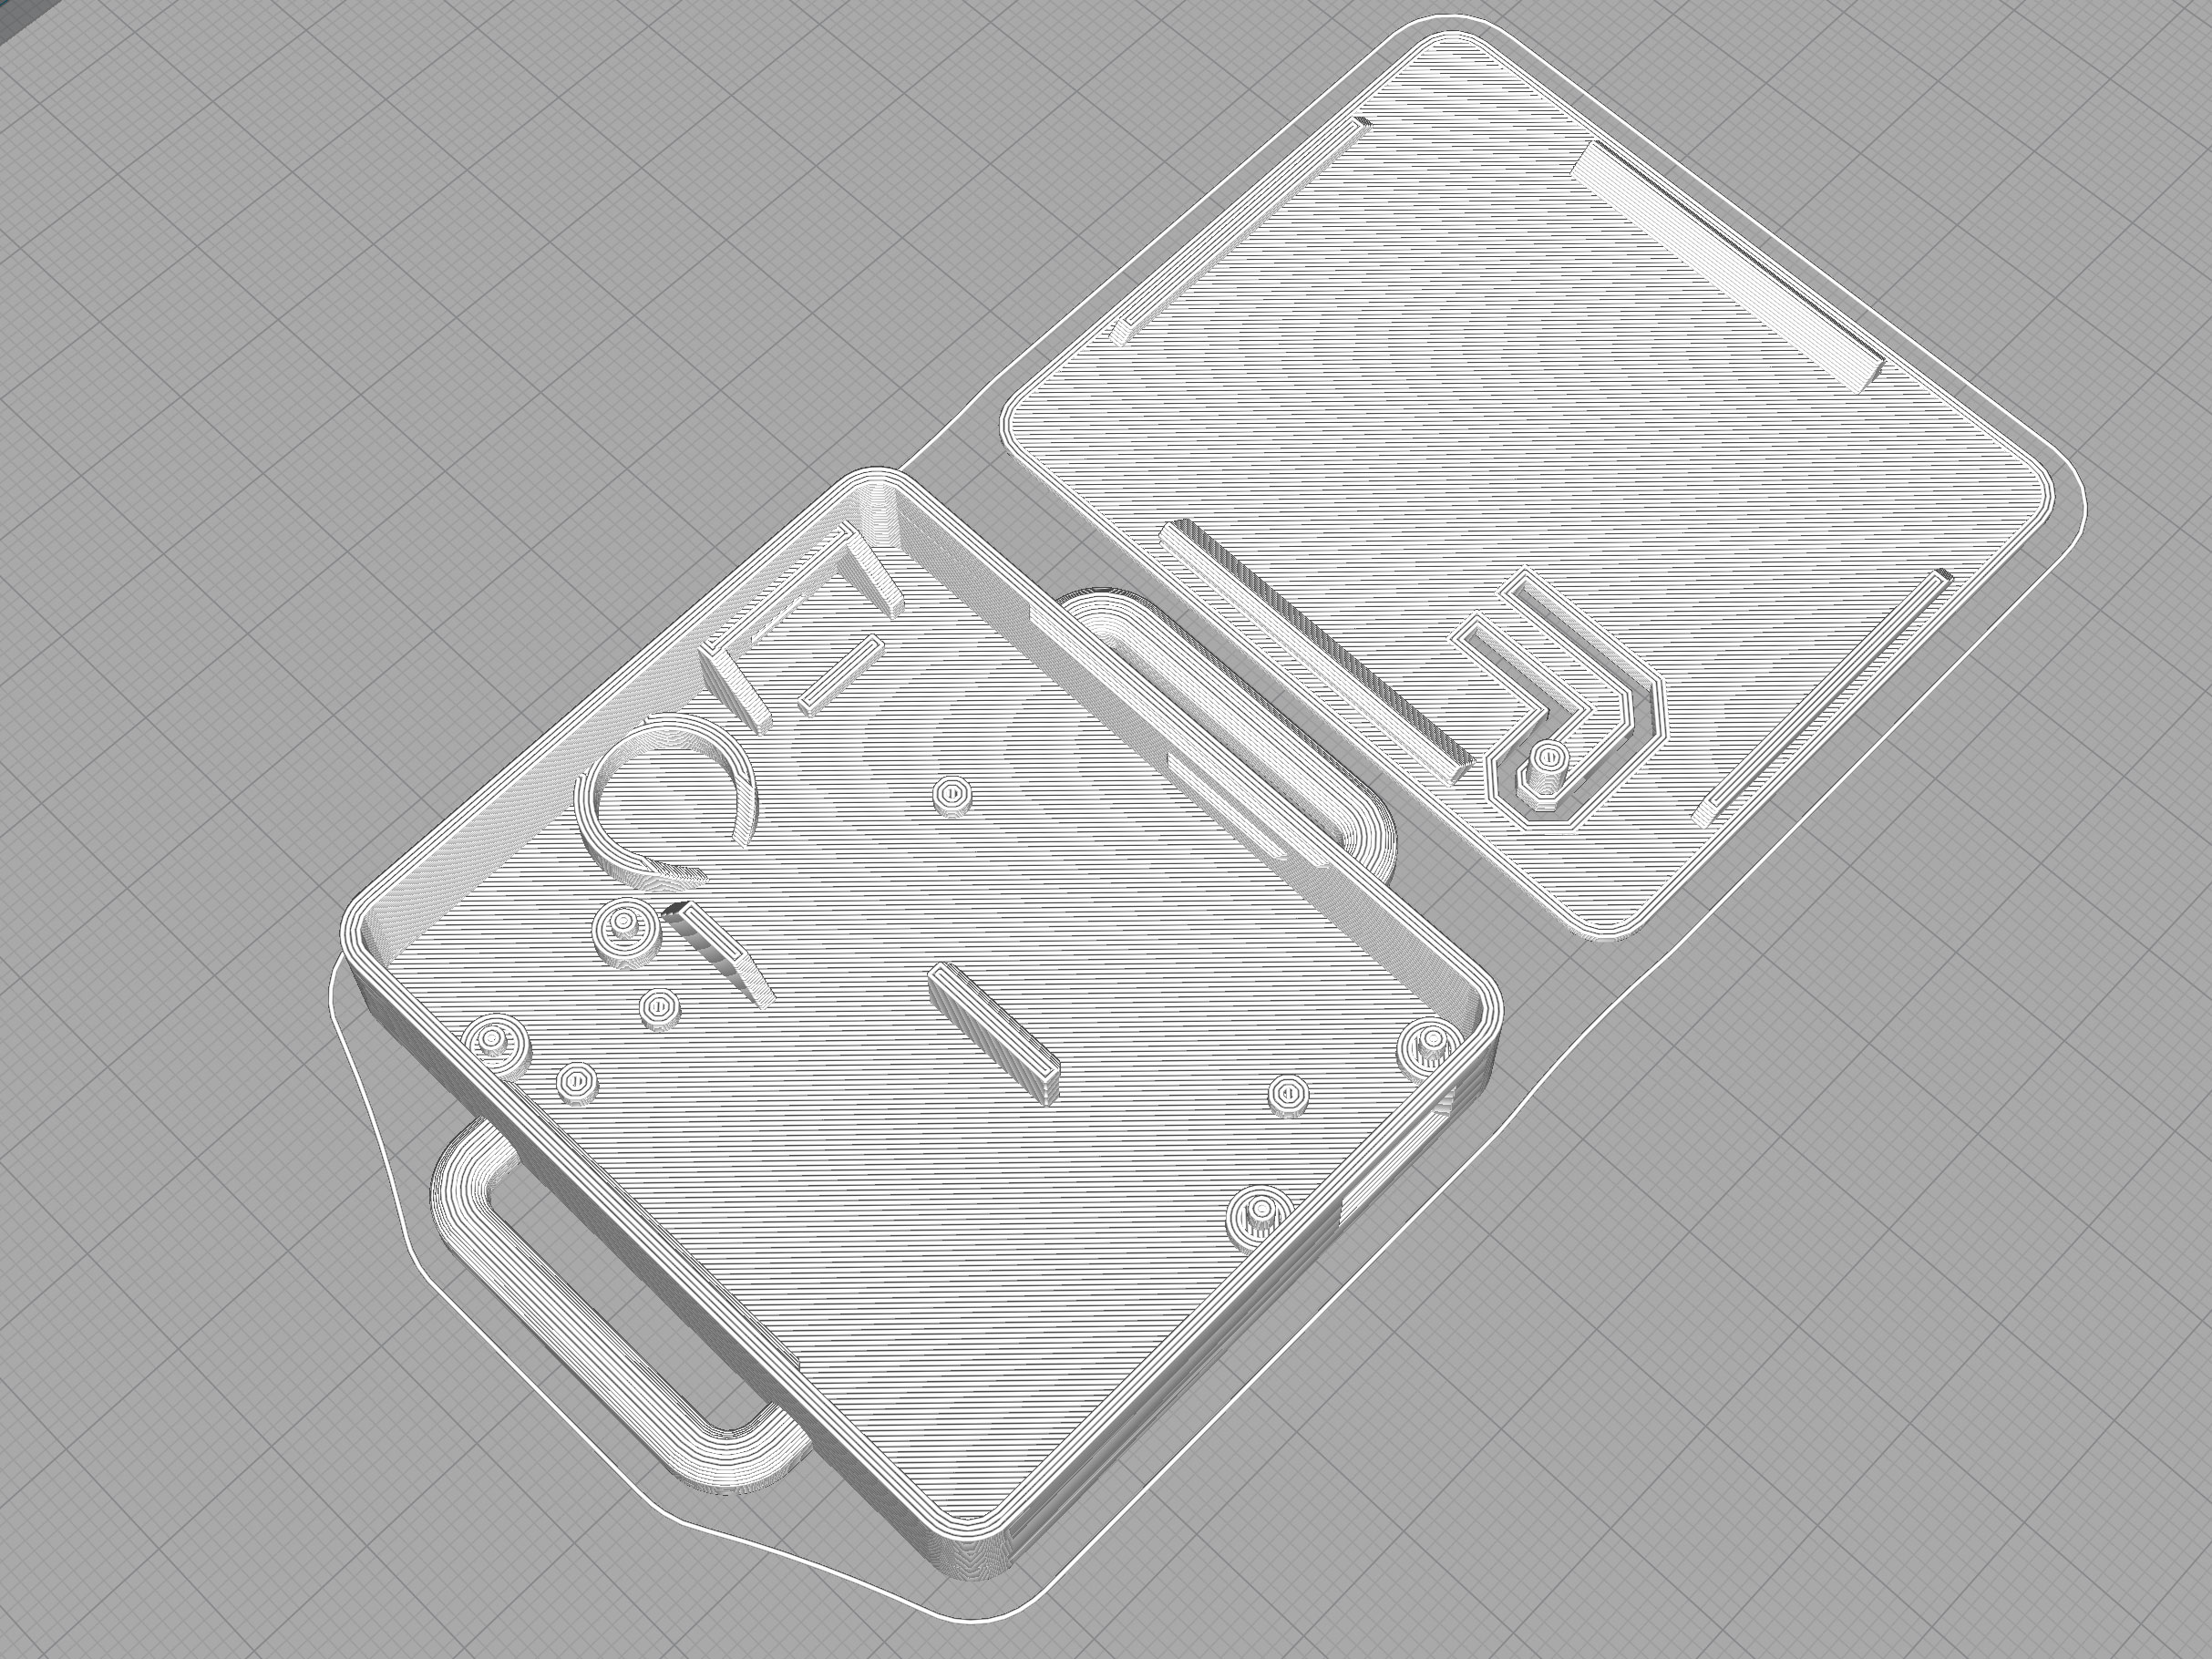 3d_printing_slice-case-cover.jpg